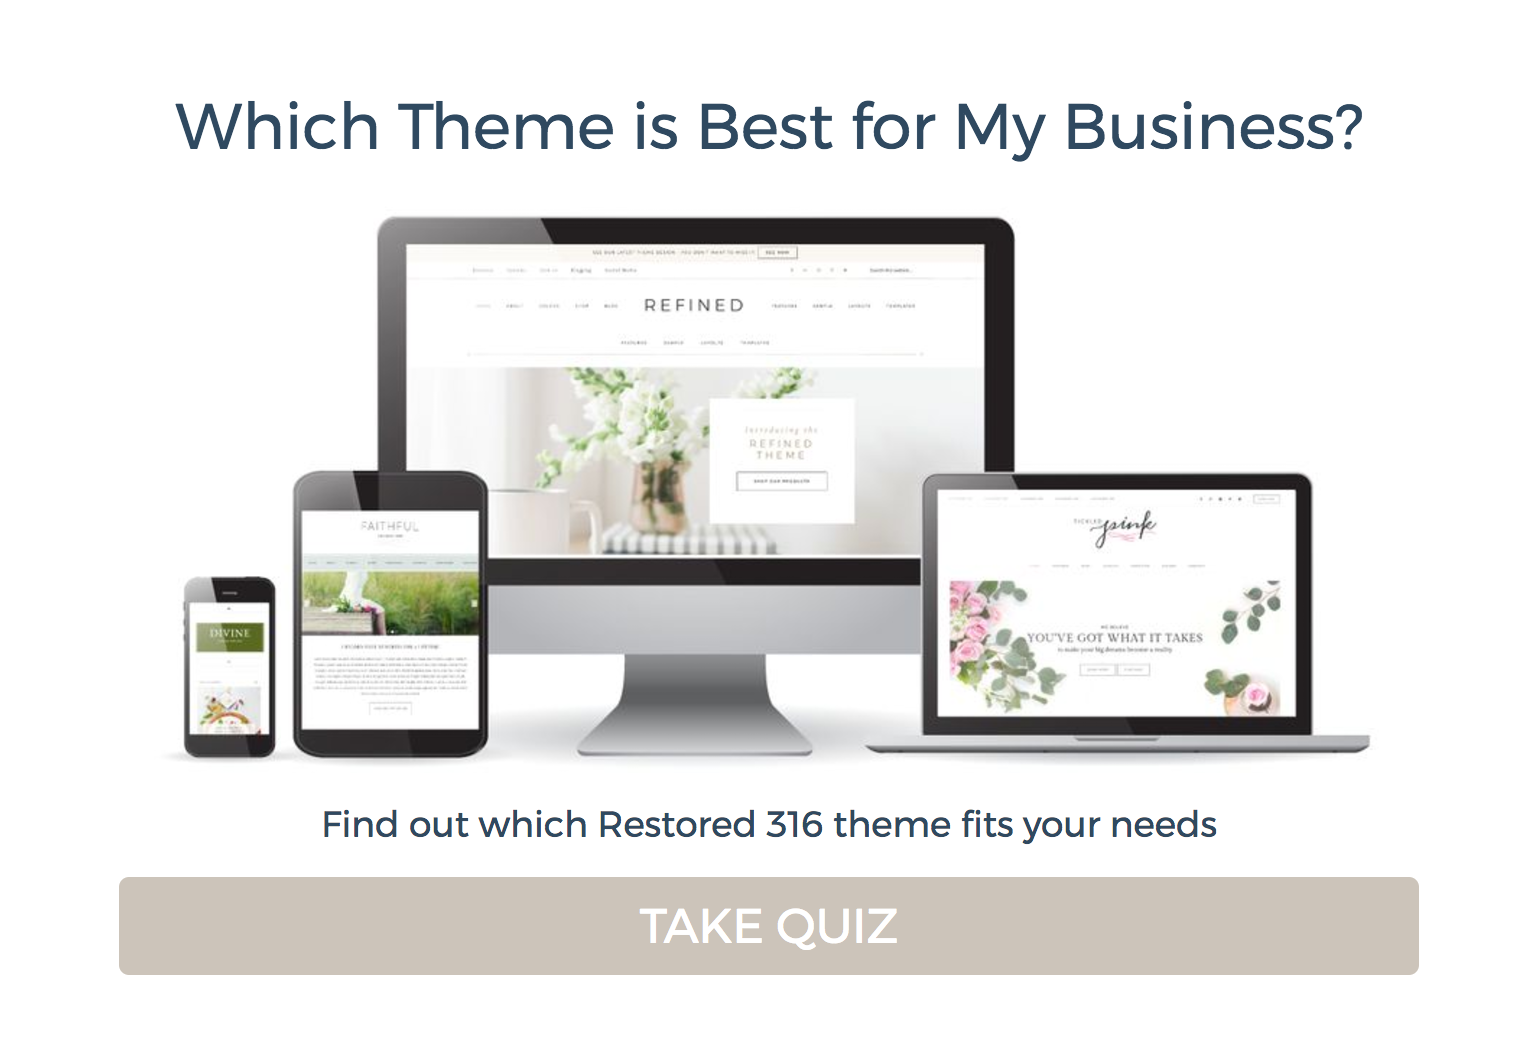 restored 316 website design theme quiz